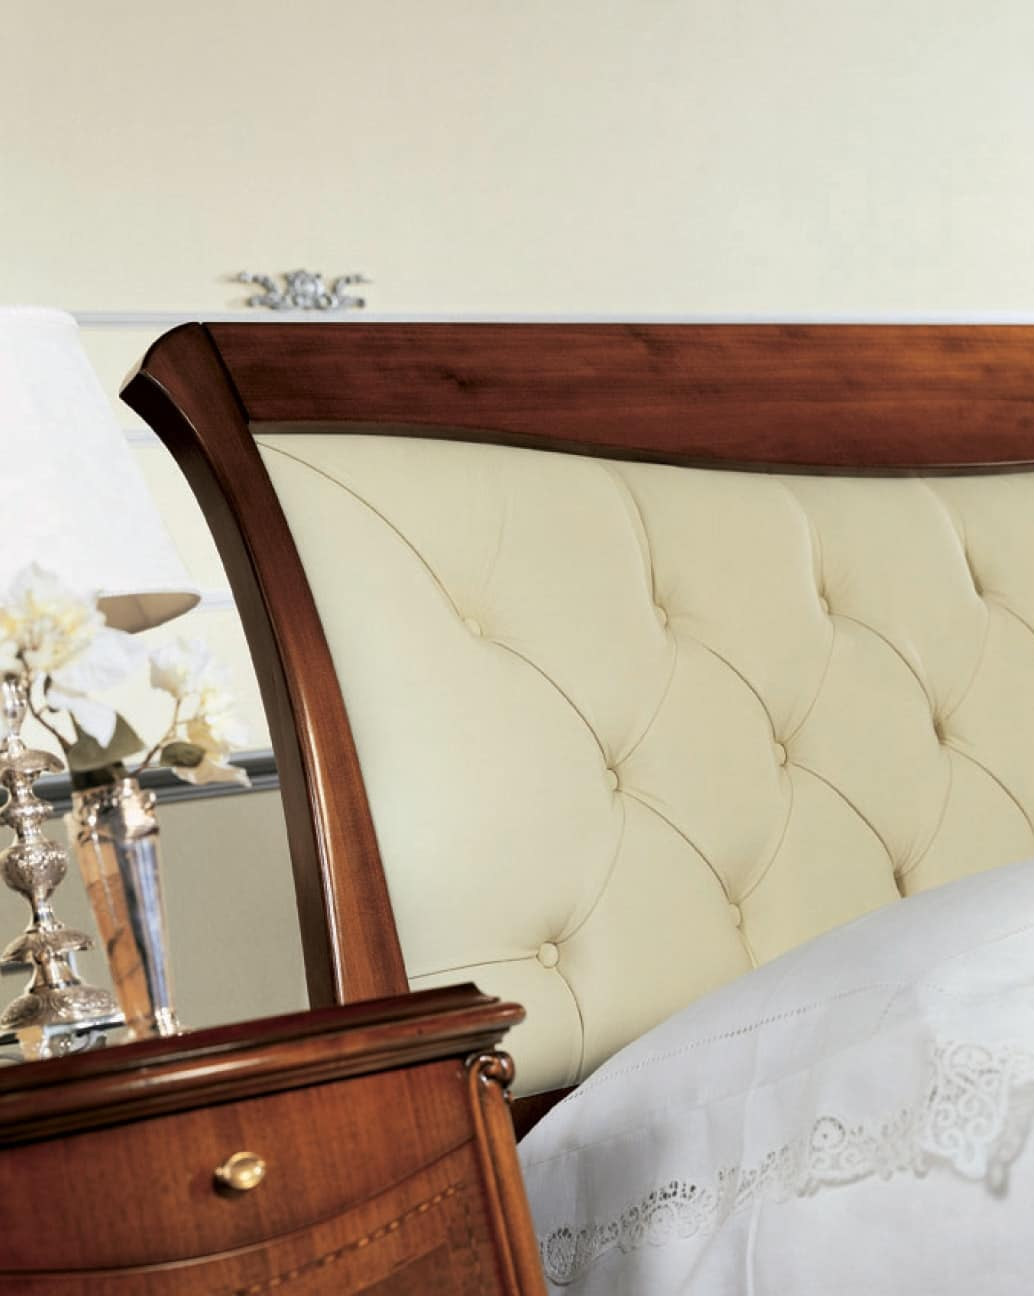 Narciso quilted bed, Walnut bed with upholstered headboard, handcrafted